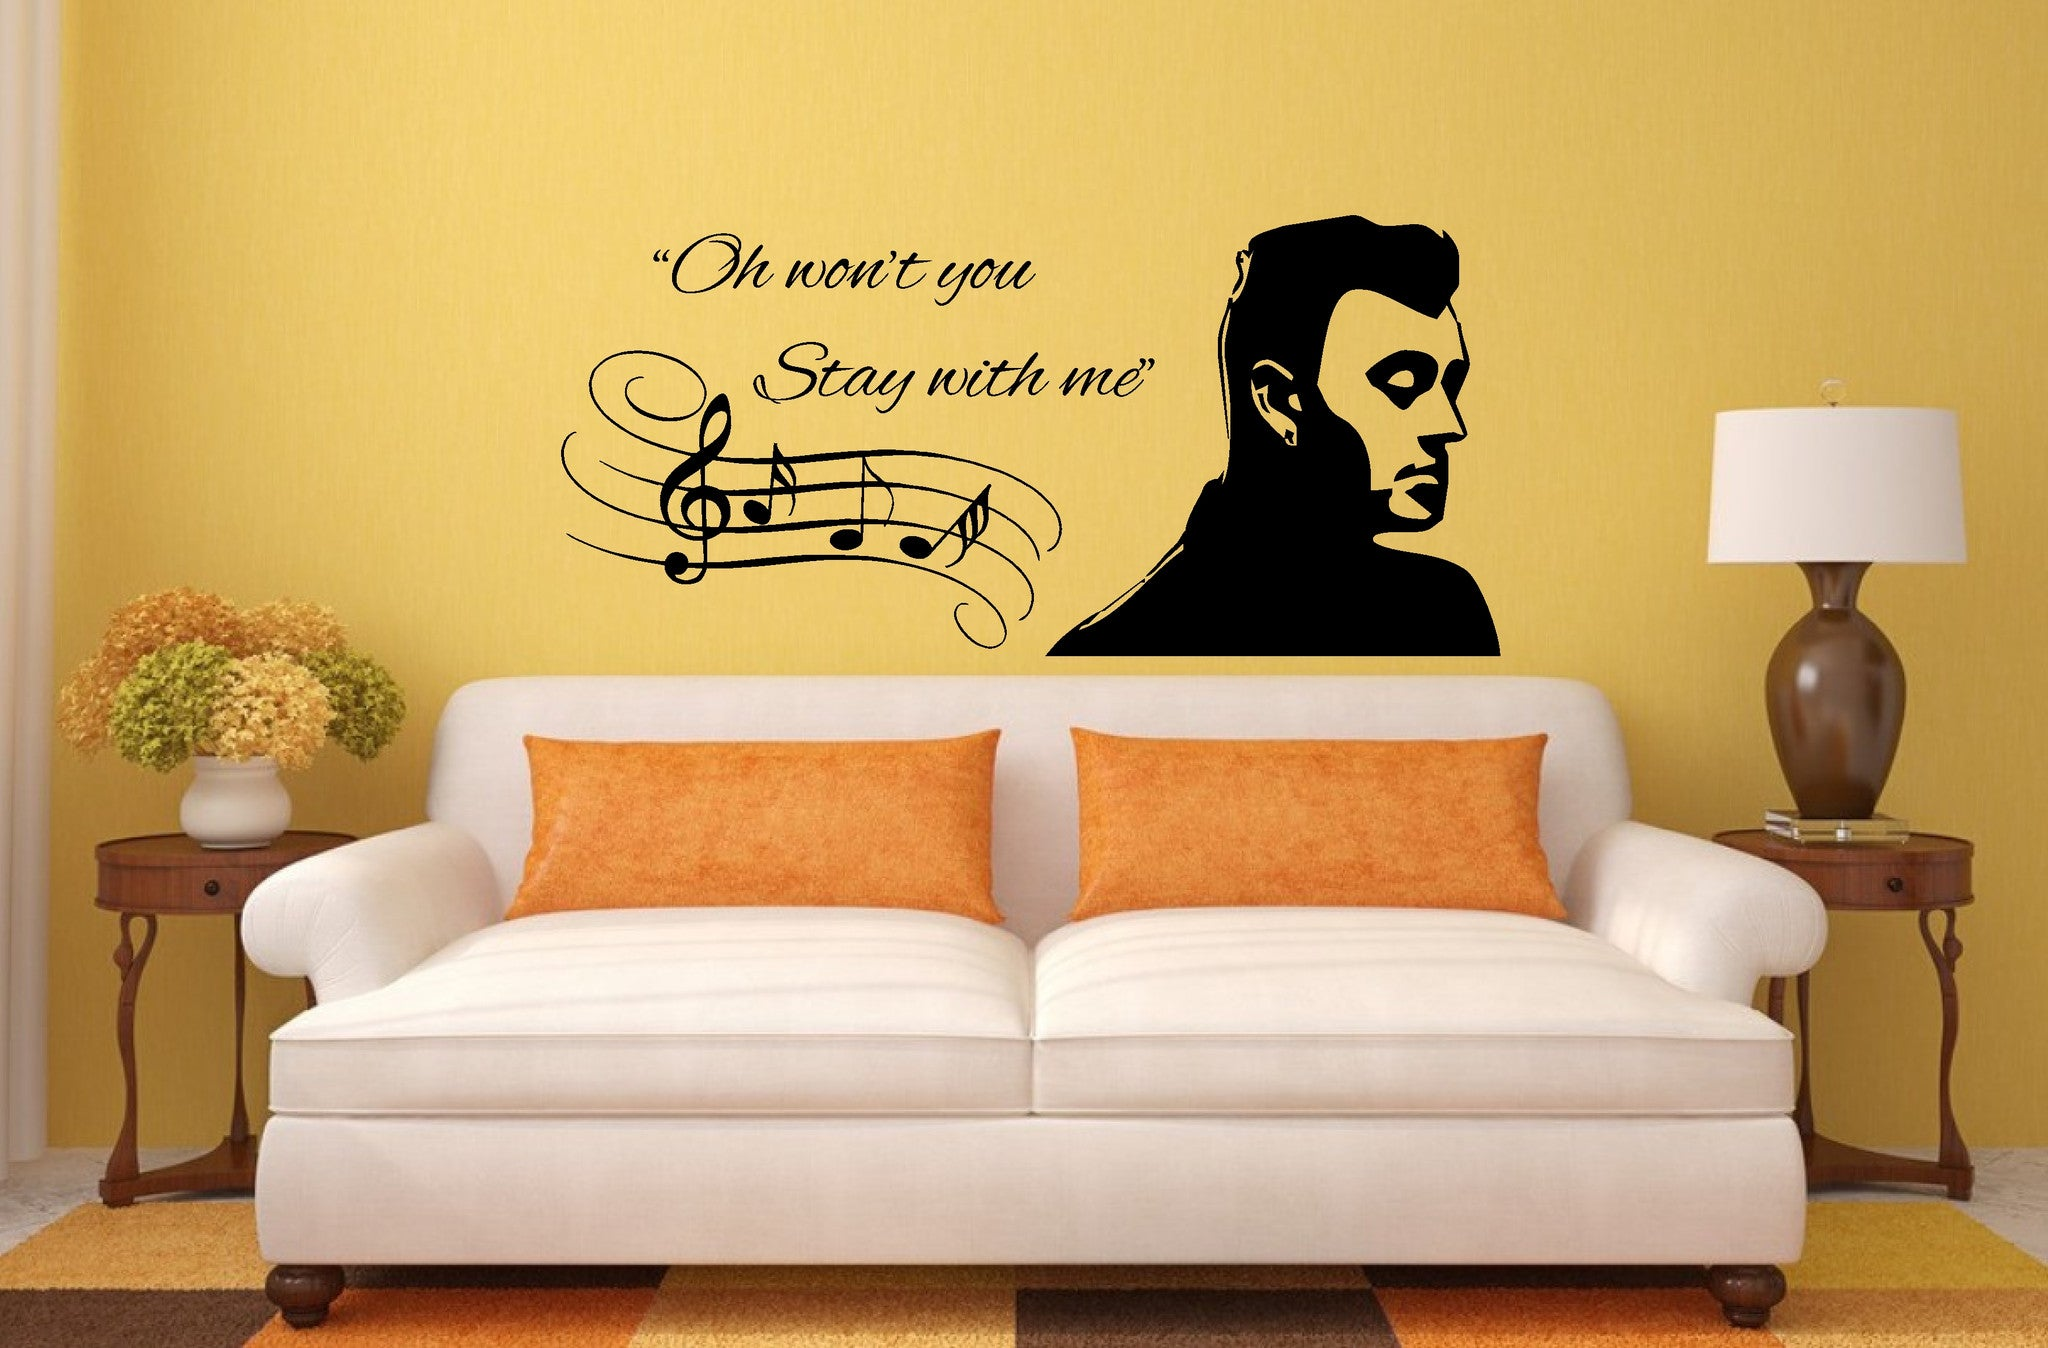 Sam Smith Wall Art Sticker, great decal for any room – Wall Art Shop